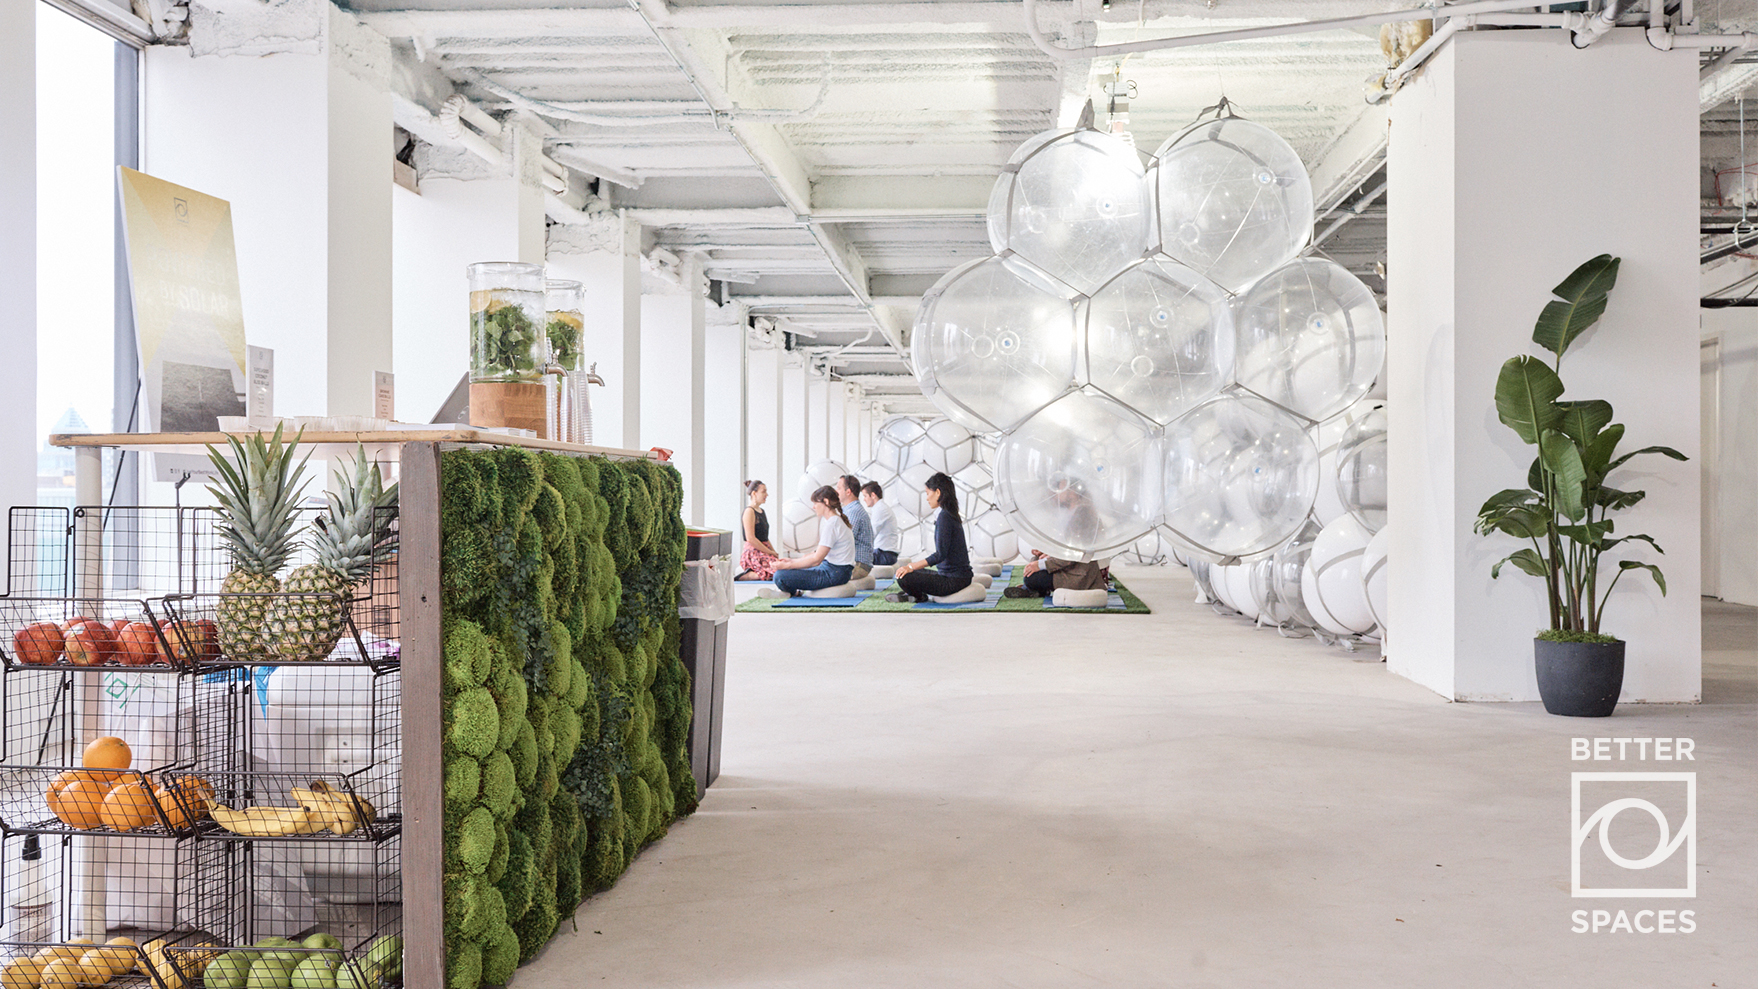 A Meditation Session in a Converted White Box Space   Photo Credit:    Bec Lorrimer , October 2017   Download for Web  |  Download for Print